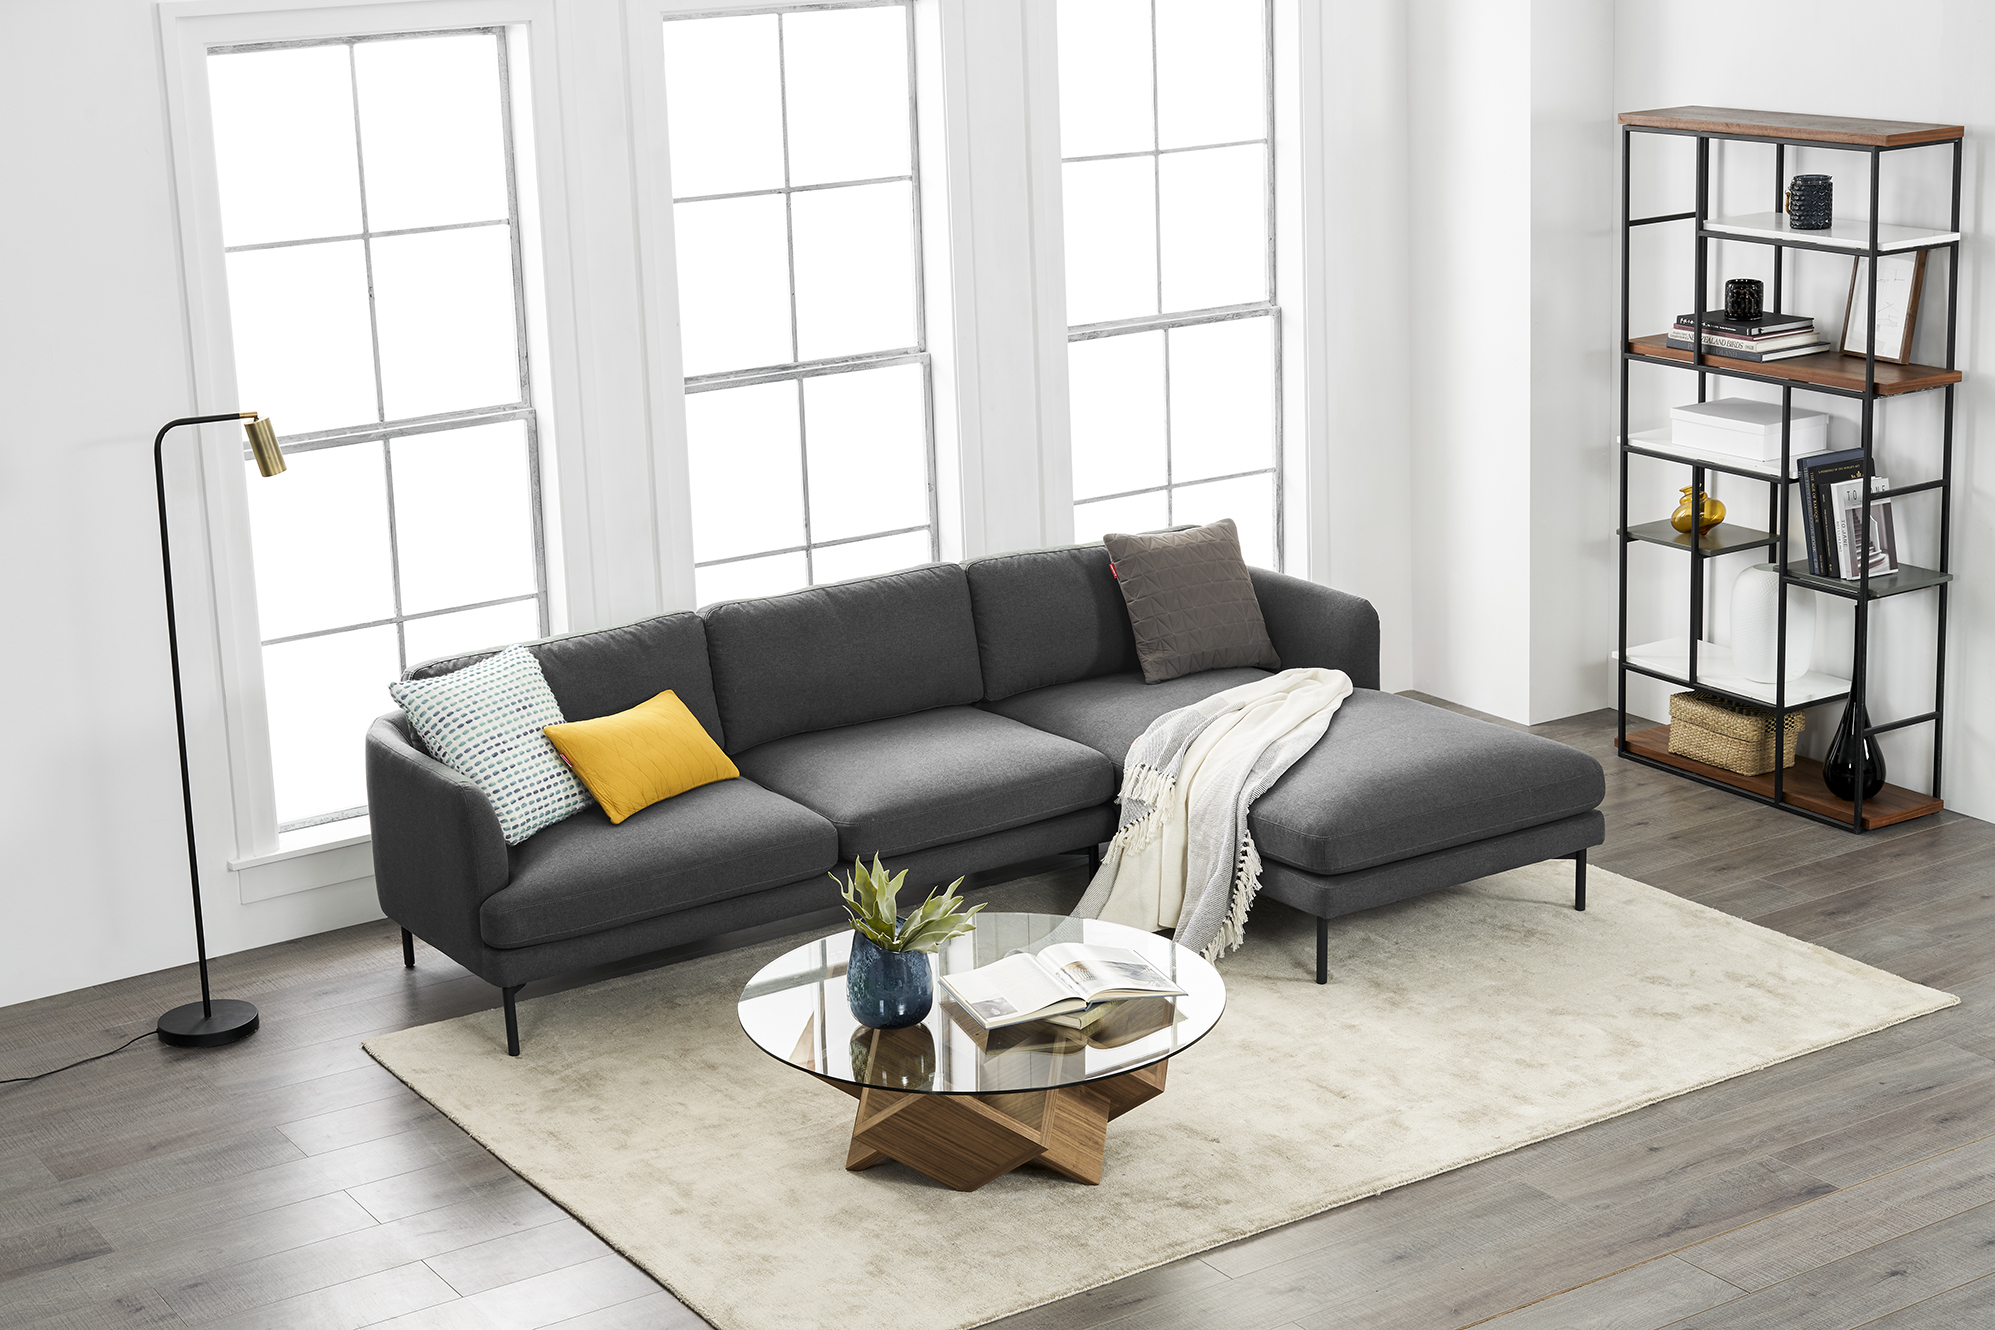 Pebble Sectional Right Chaise Sofa-Fumo-Grey-Set3